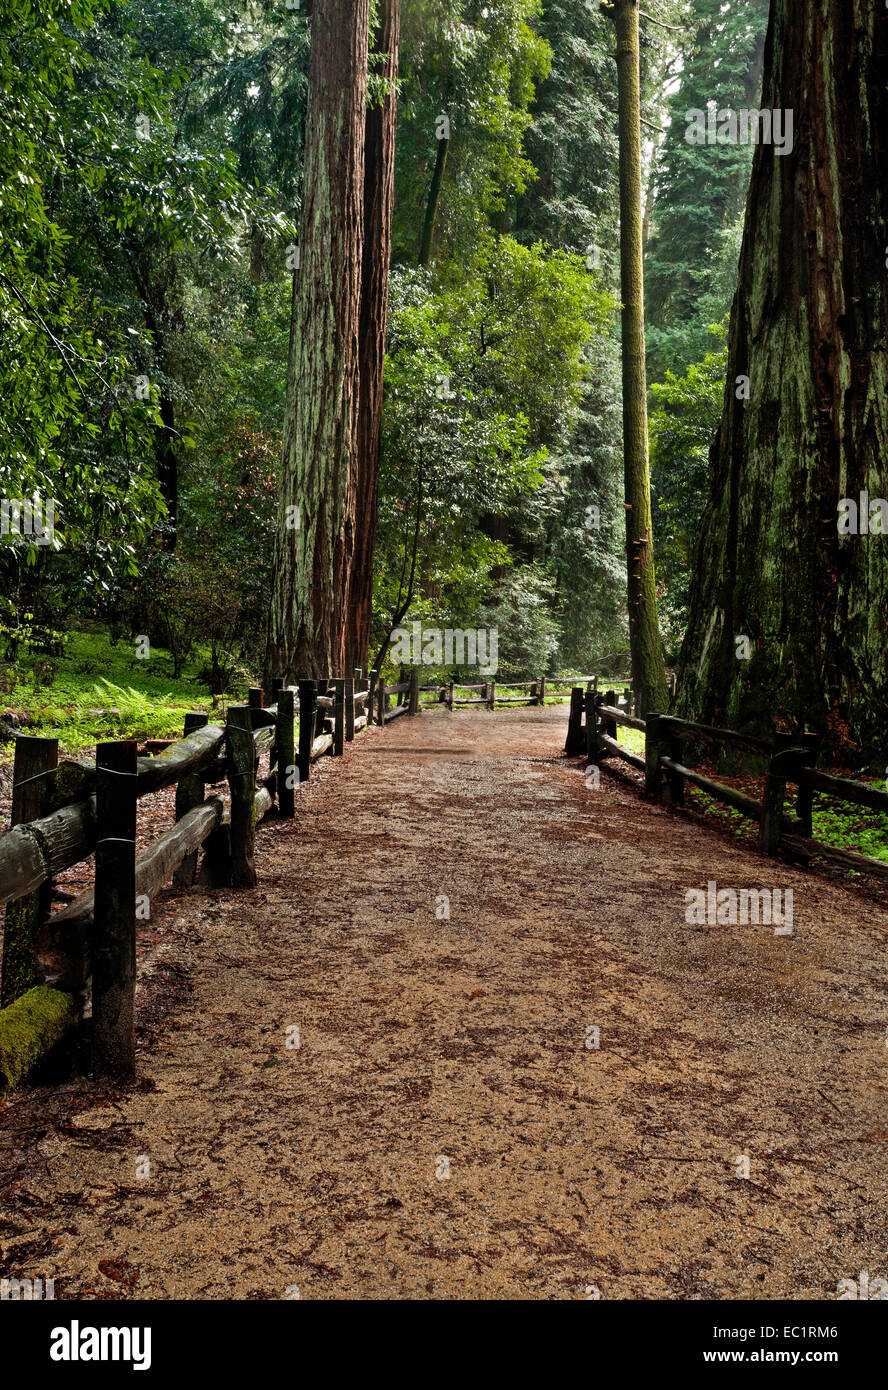 CA02450-00...CALIFORNIA - Redwood trees along the Redwood Grove Loop Trail in Henry Cowell Redwoods State Park. - Stock Image